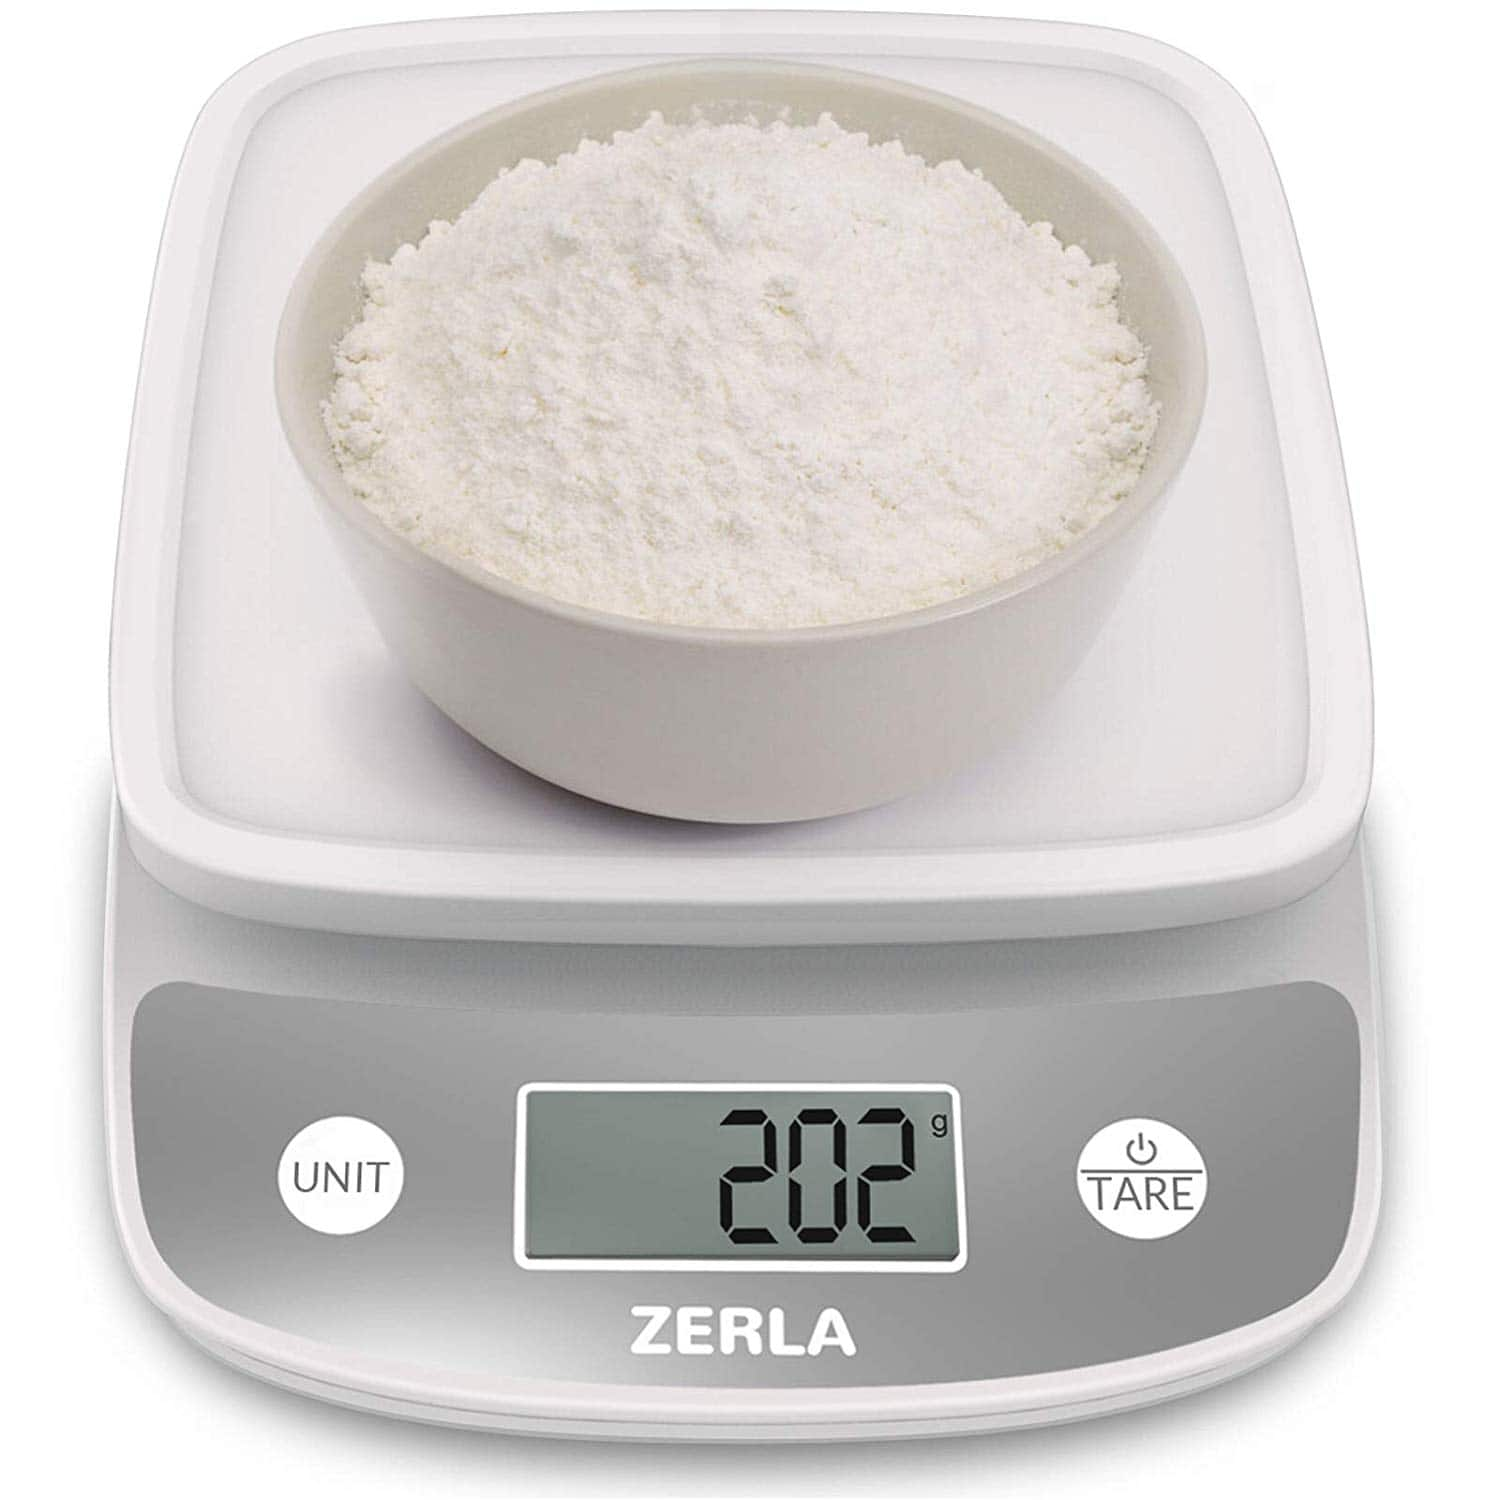 Digital Kitchen Scale by Zerla Food Scale Weigh Snacks, Liquids, Foods — Accurate Weight Scale within .05 oz. up to 11 lbs $8.39